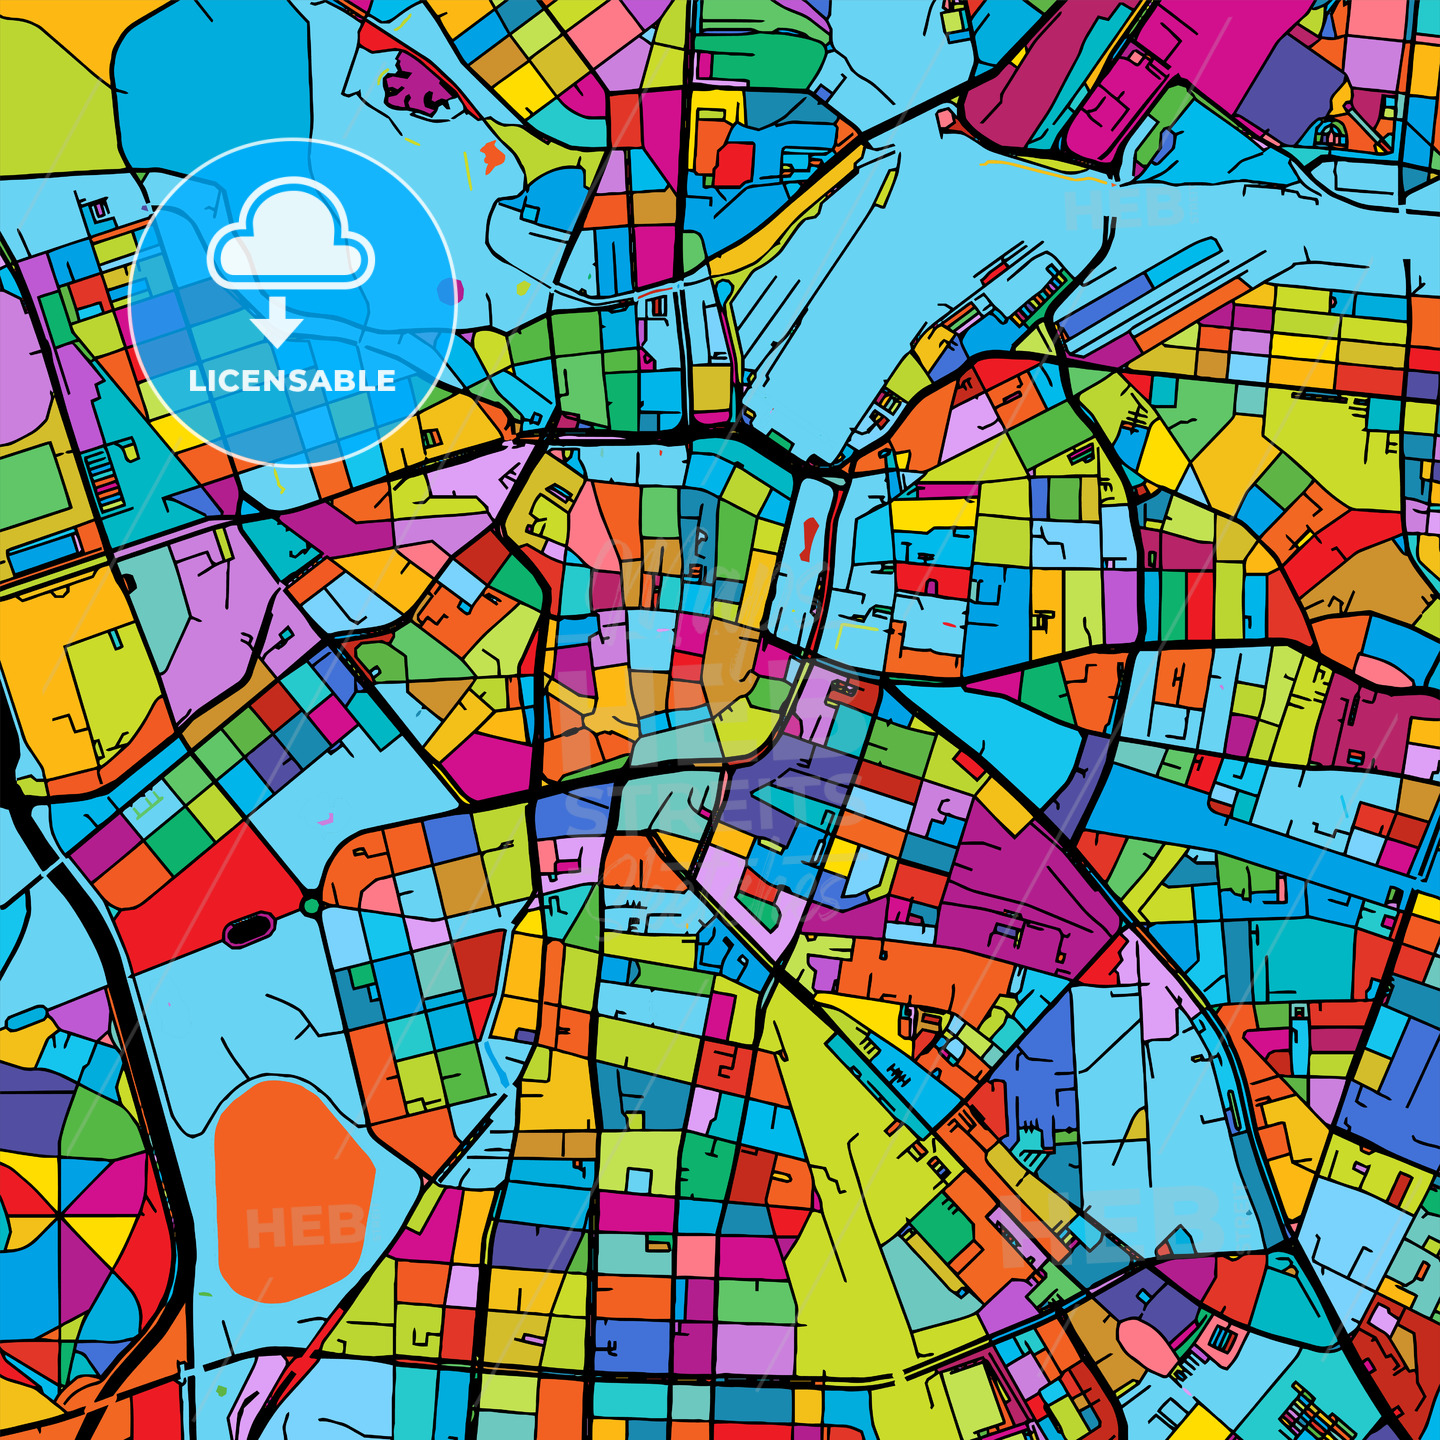 Leipzig, Germany Colorful Vector Map on Black - HEBSTREIT's Sketches